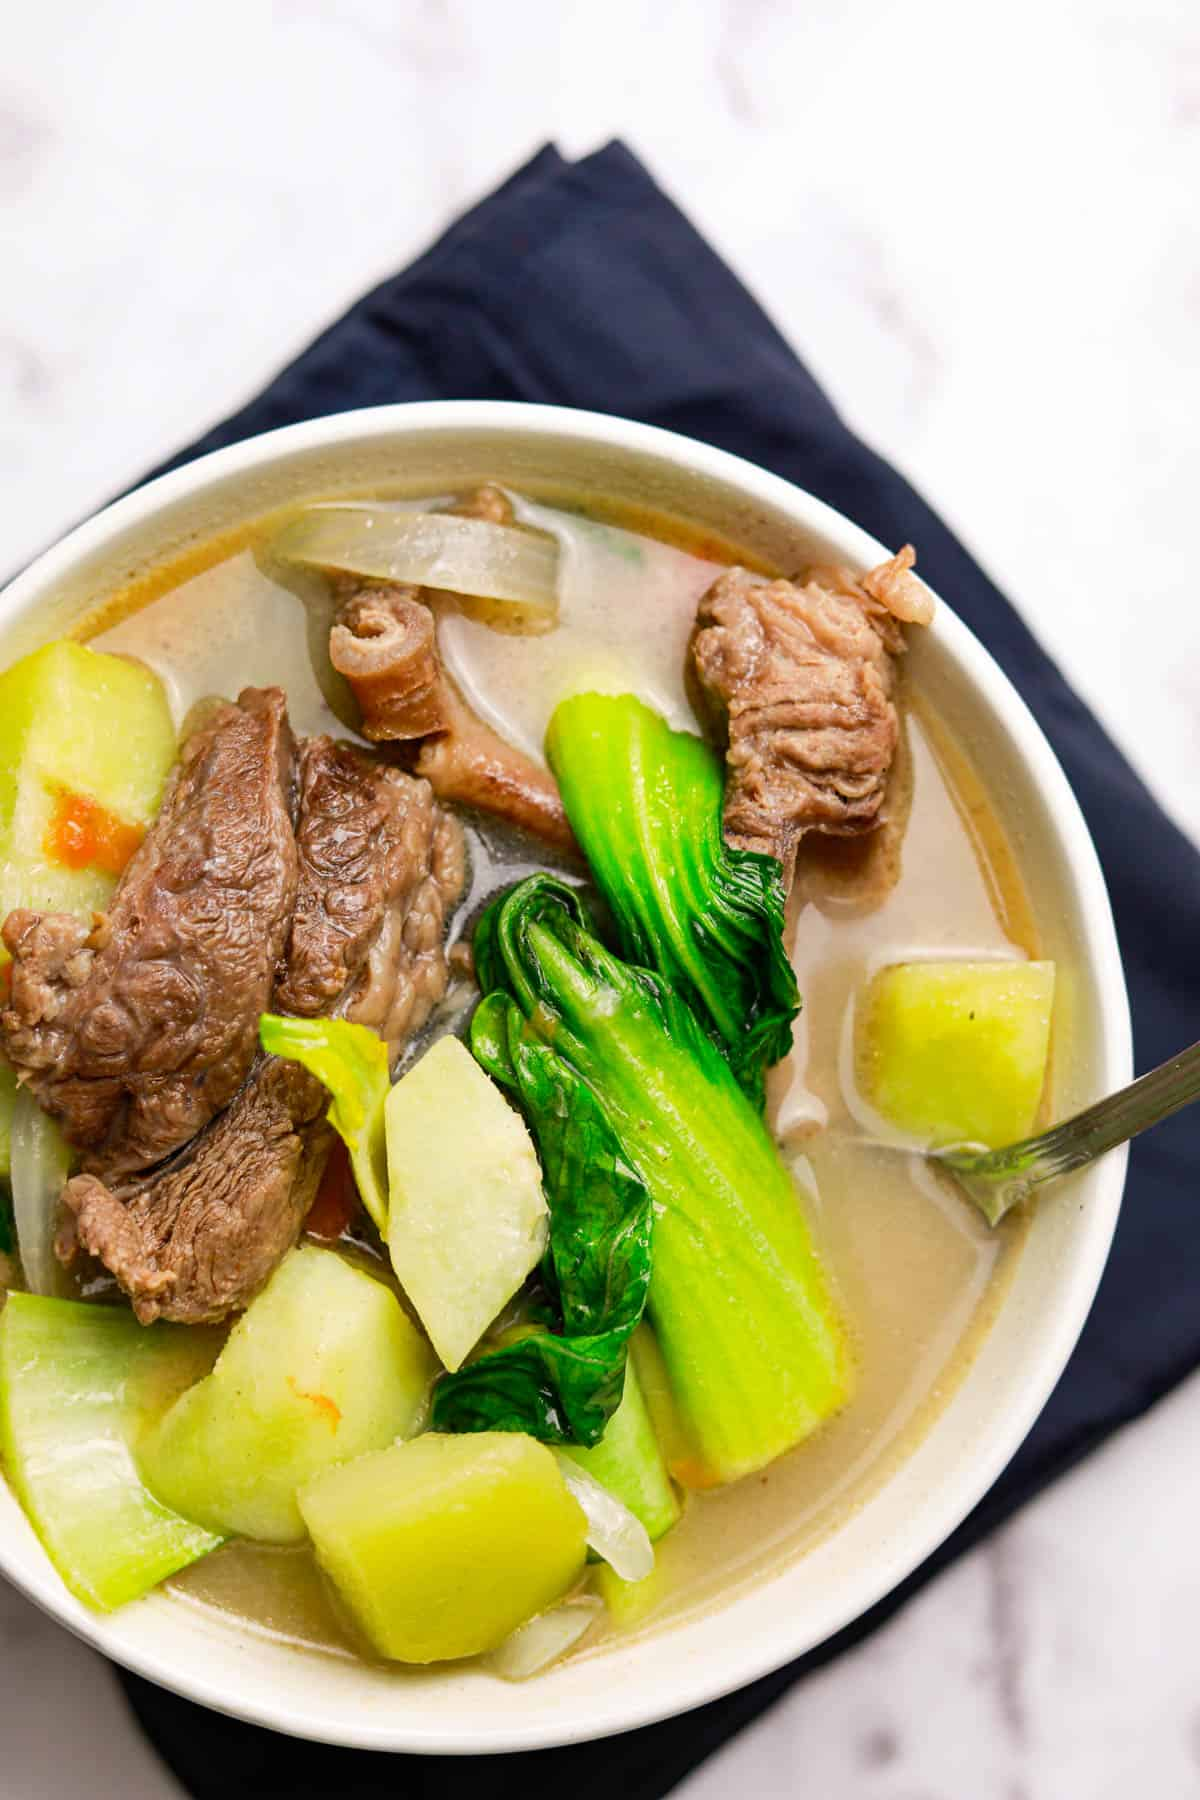 Beef Ribs Sinigang with Lemon Juice is a sour beef soup. Usually, the tamarind is used for making the sour broth. I am using lemon juice with this recipe instead. Sinigang is a famous Filipino soup you may like to try. via @seasiderecipes